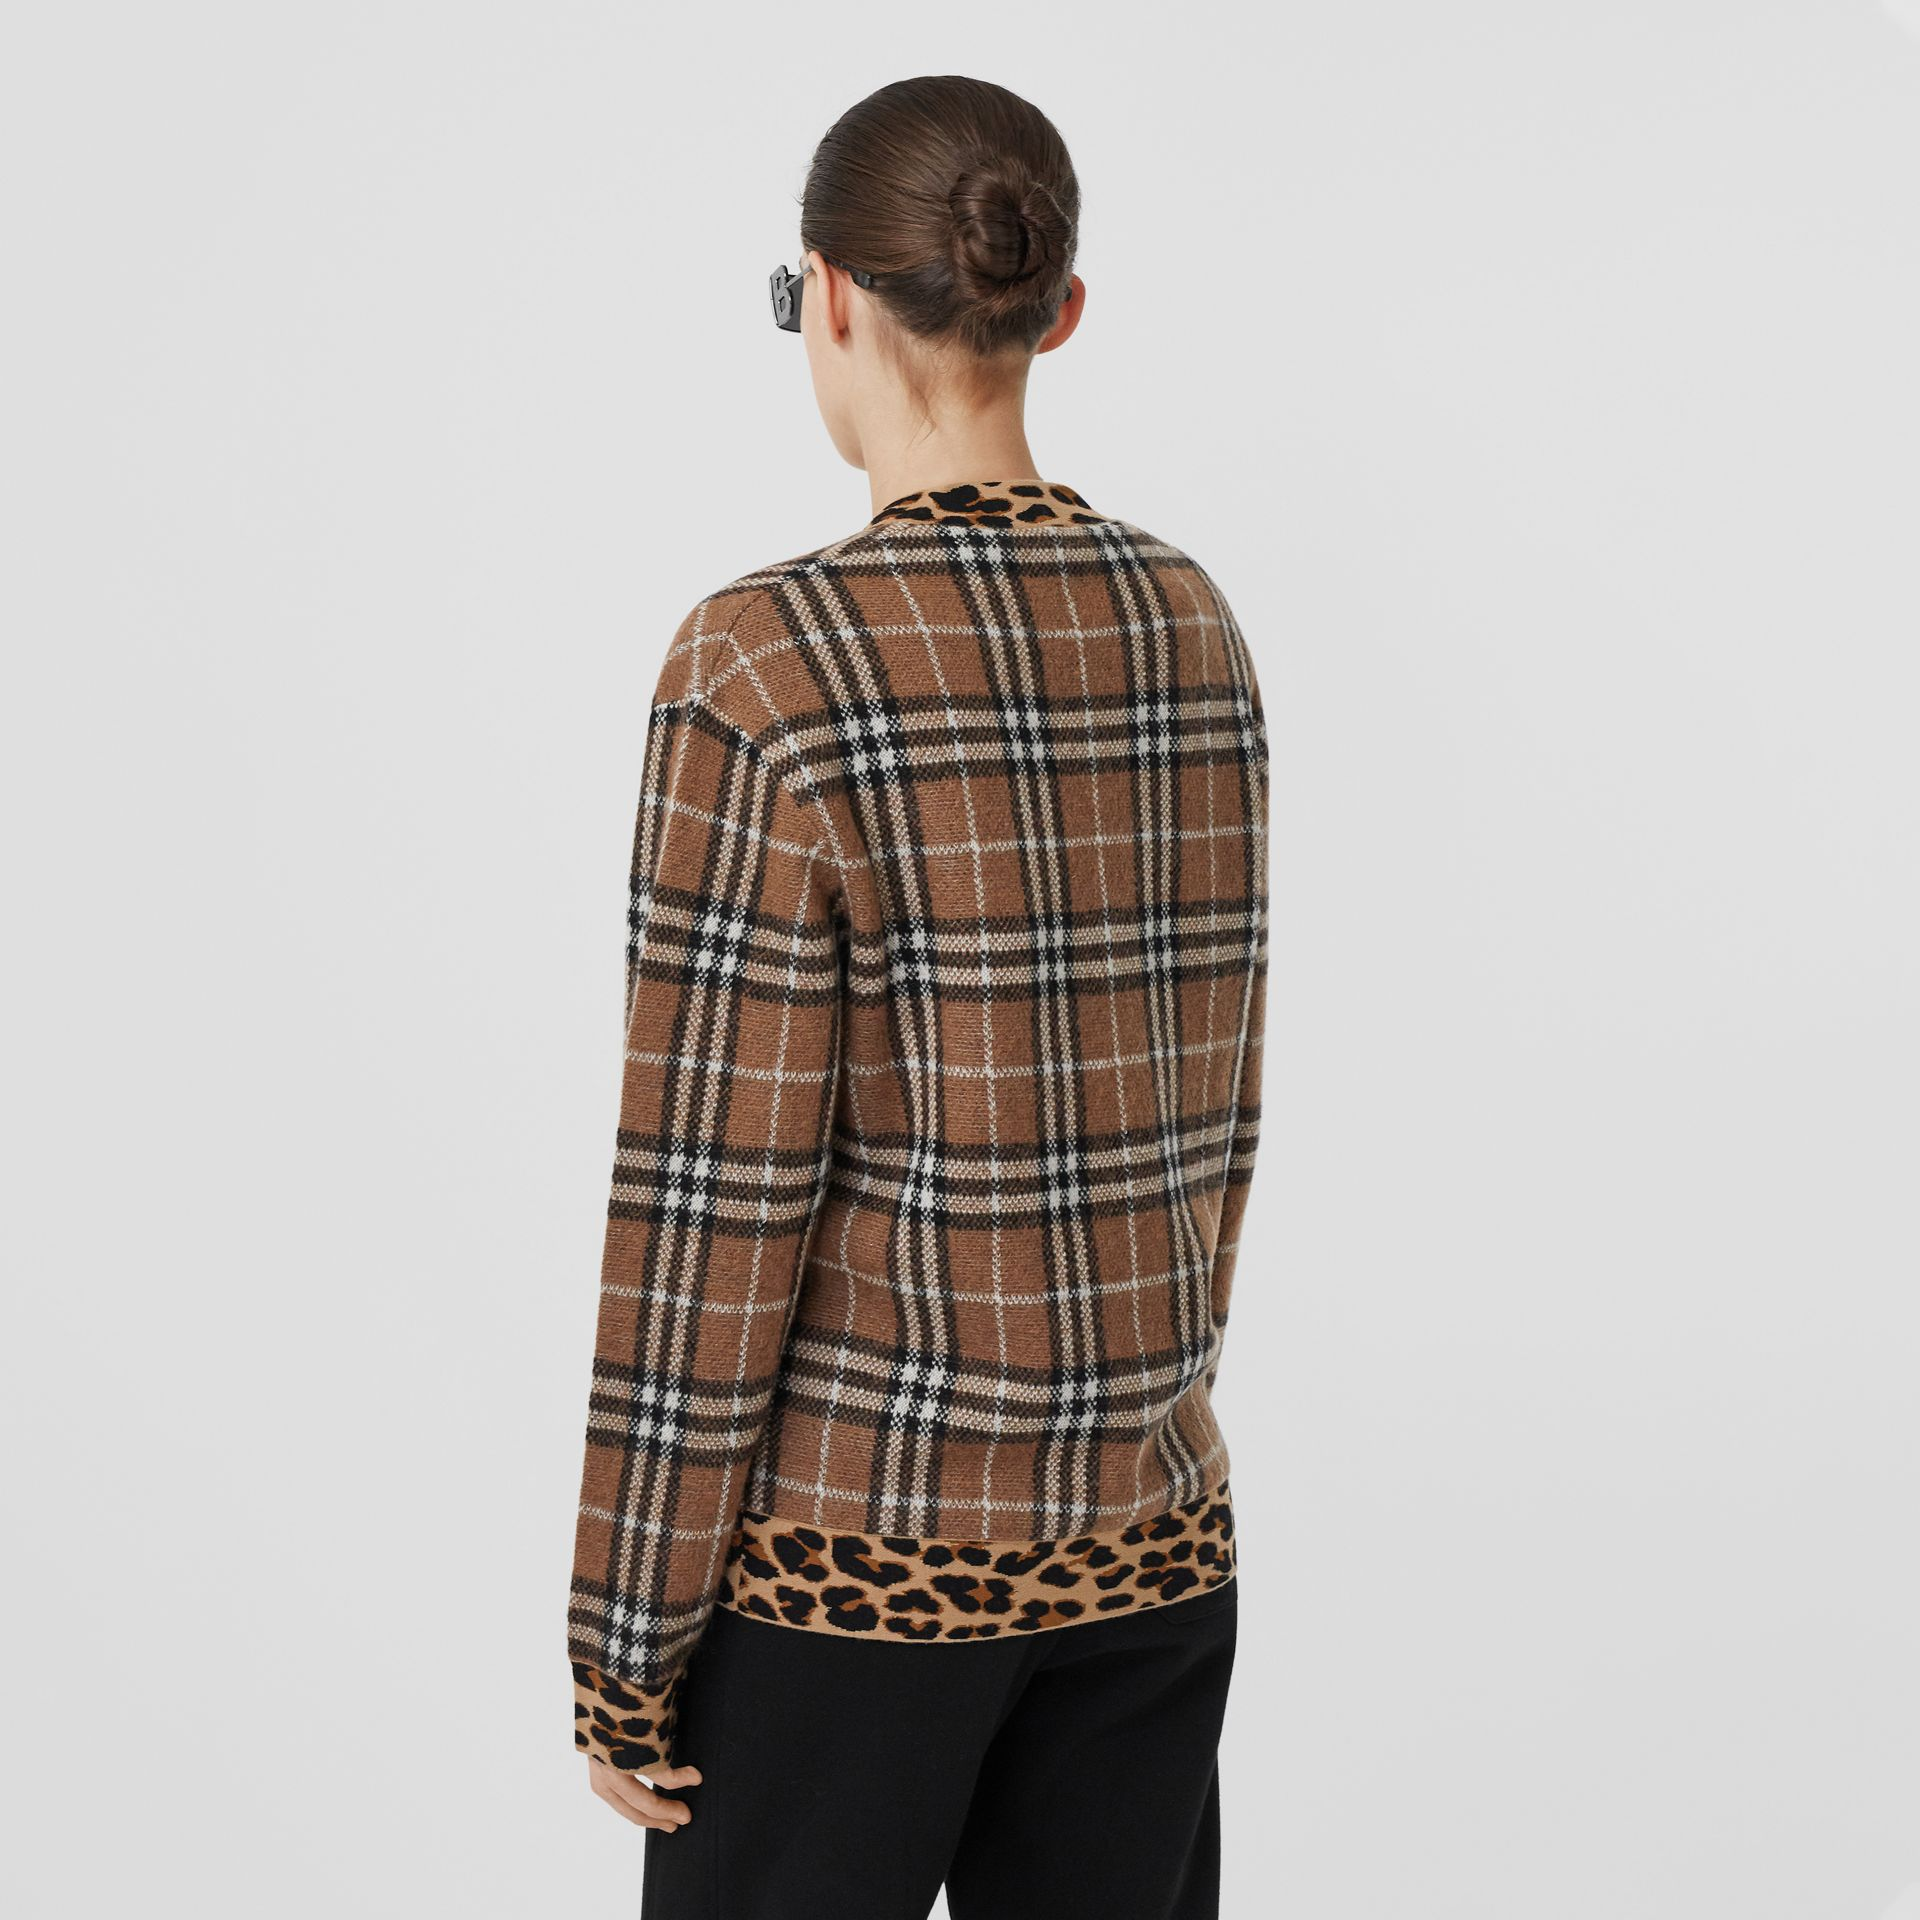 Leopard Detail Vintage Check Cashmere Blend Sweater in Archive Beige - Women | Burberry Hong Kong S.A.R - gallery image 2